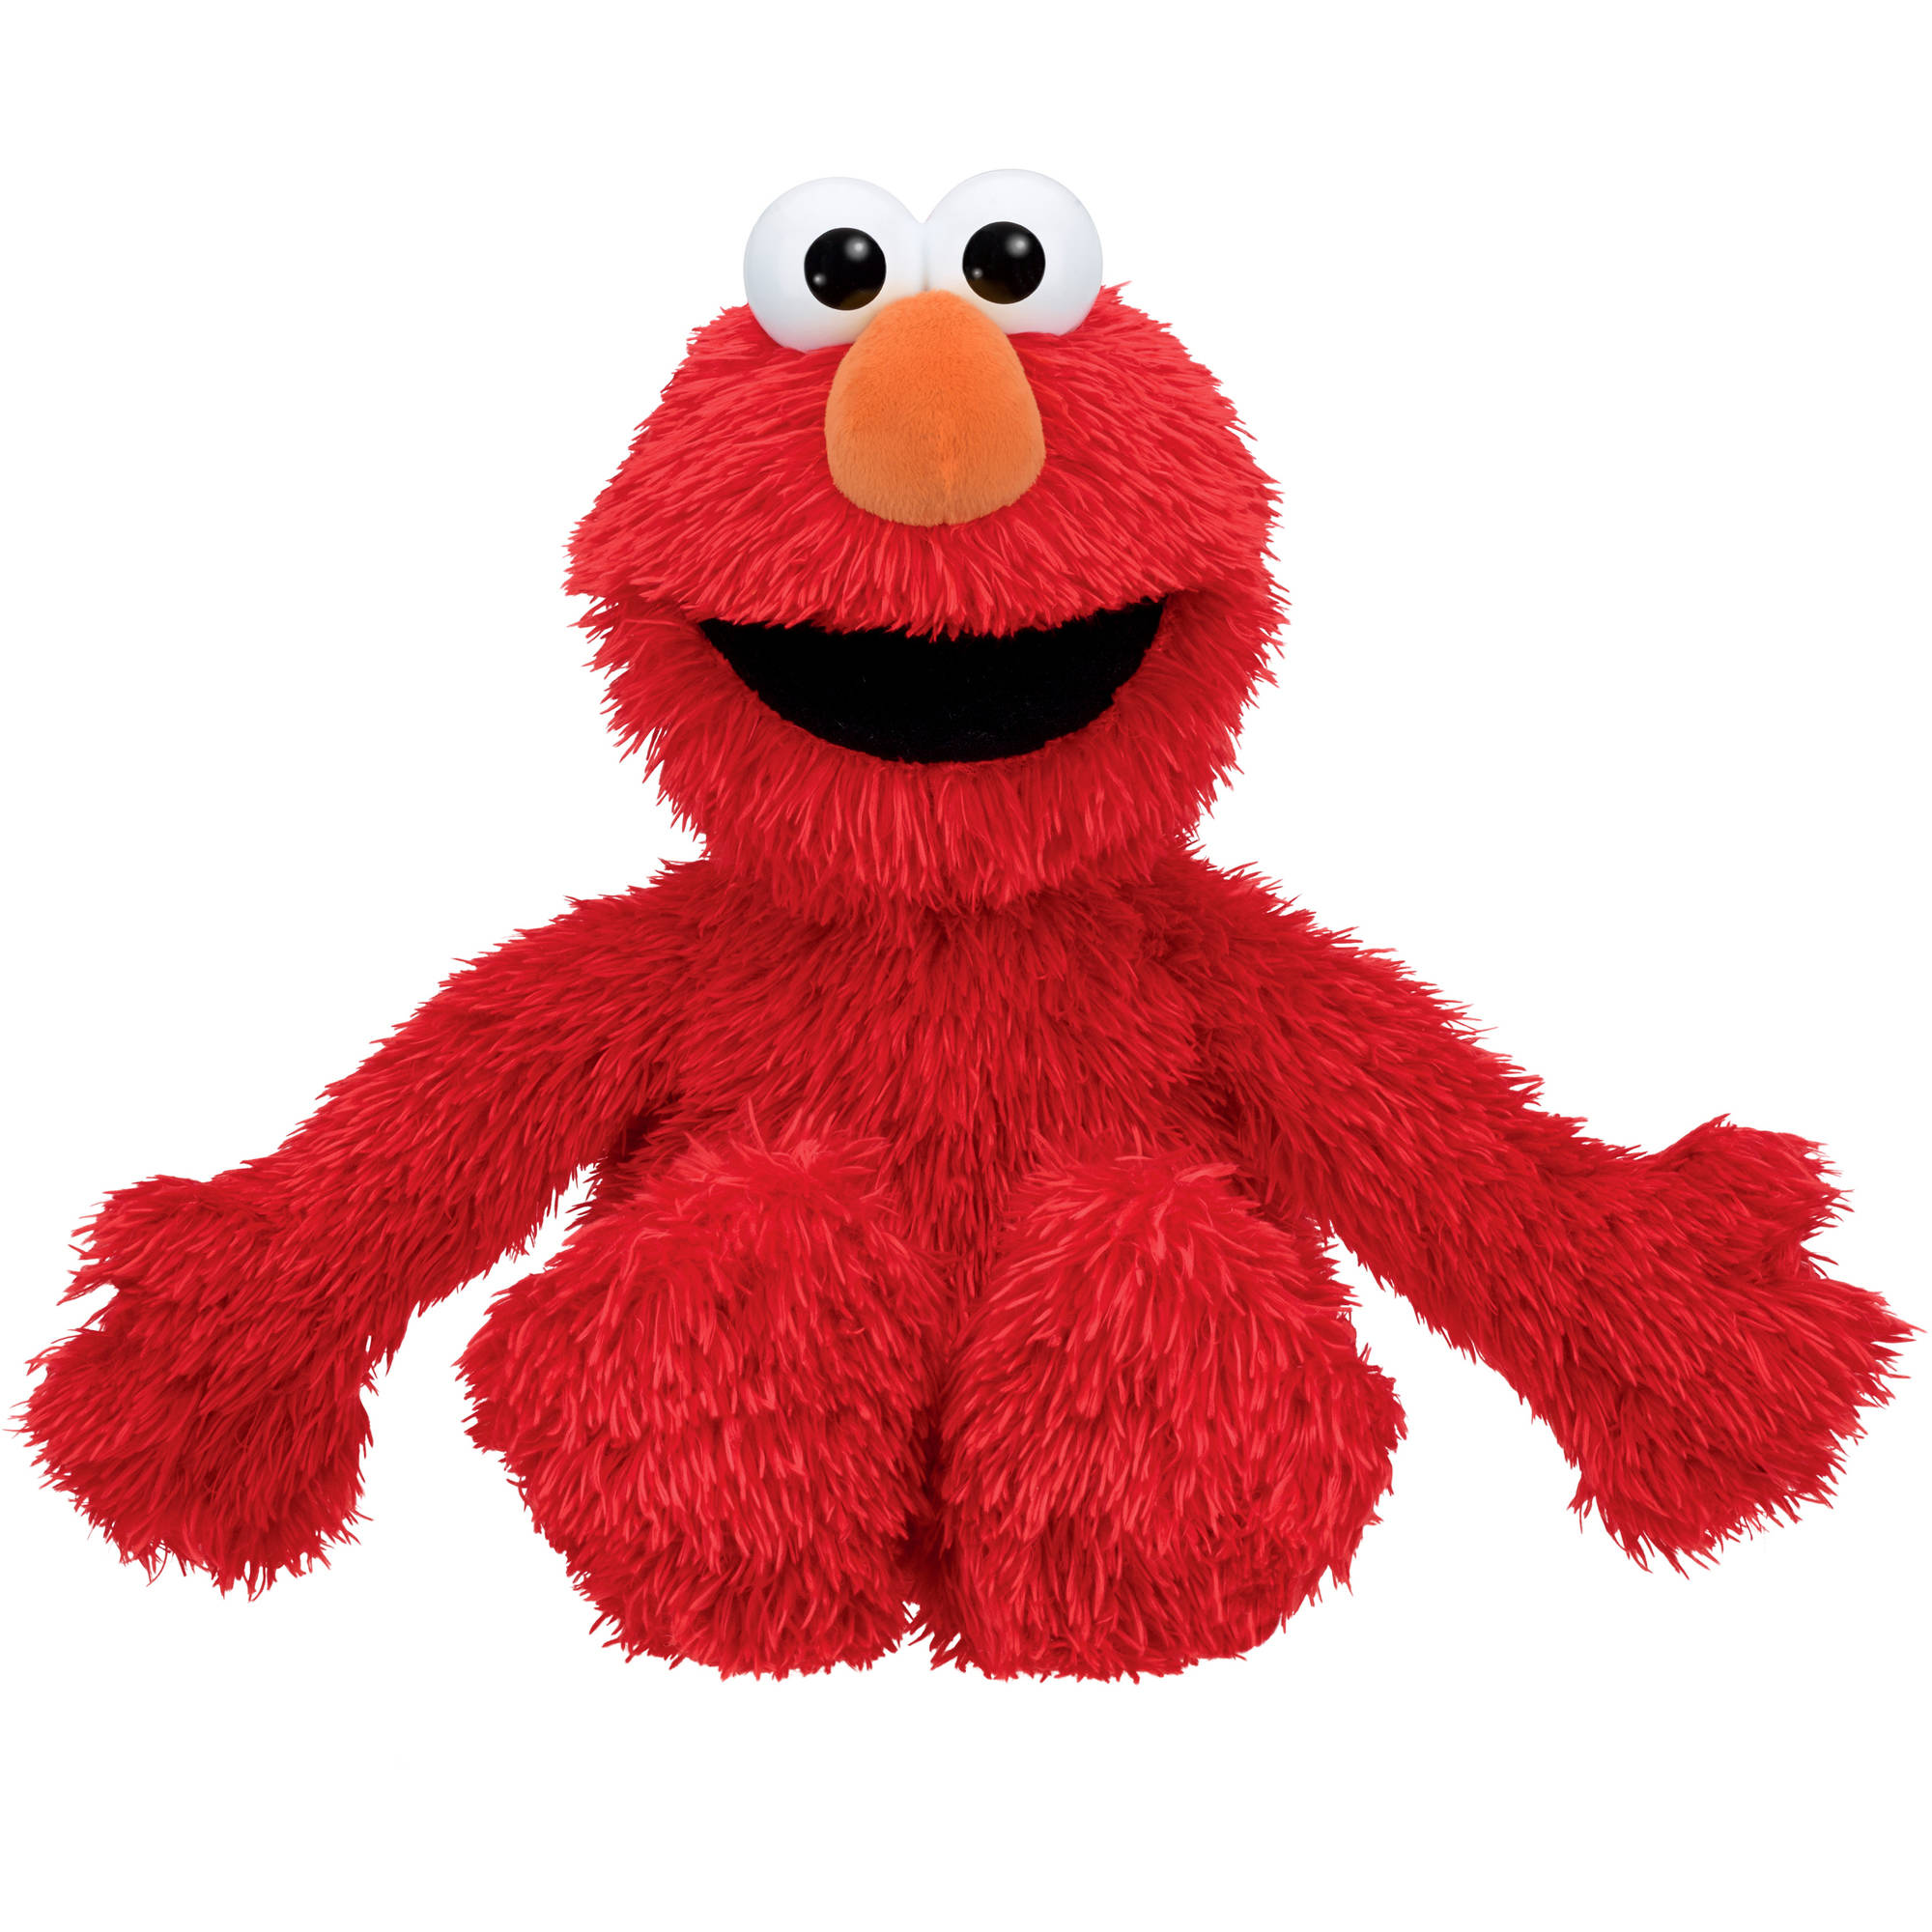 Sesame Street Love2learn Elmo